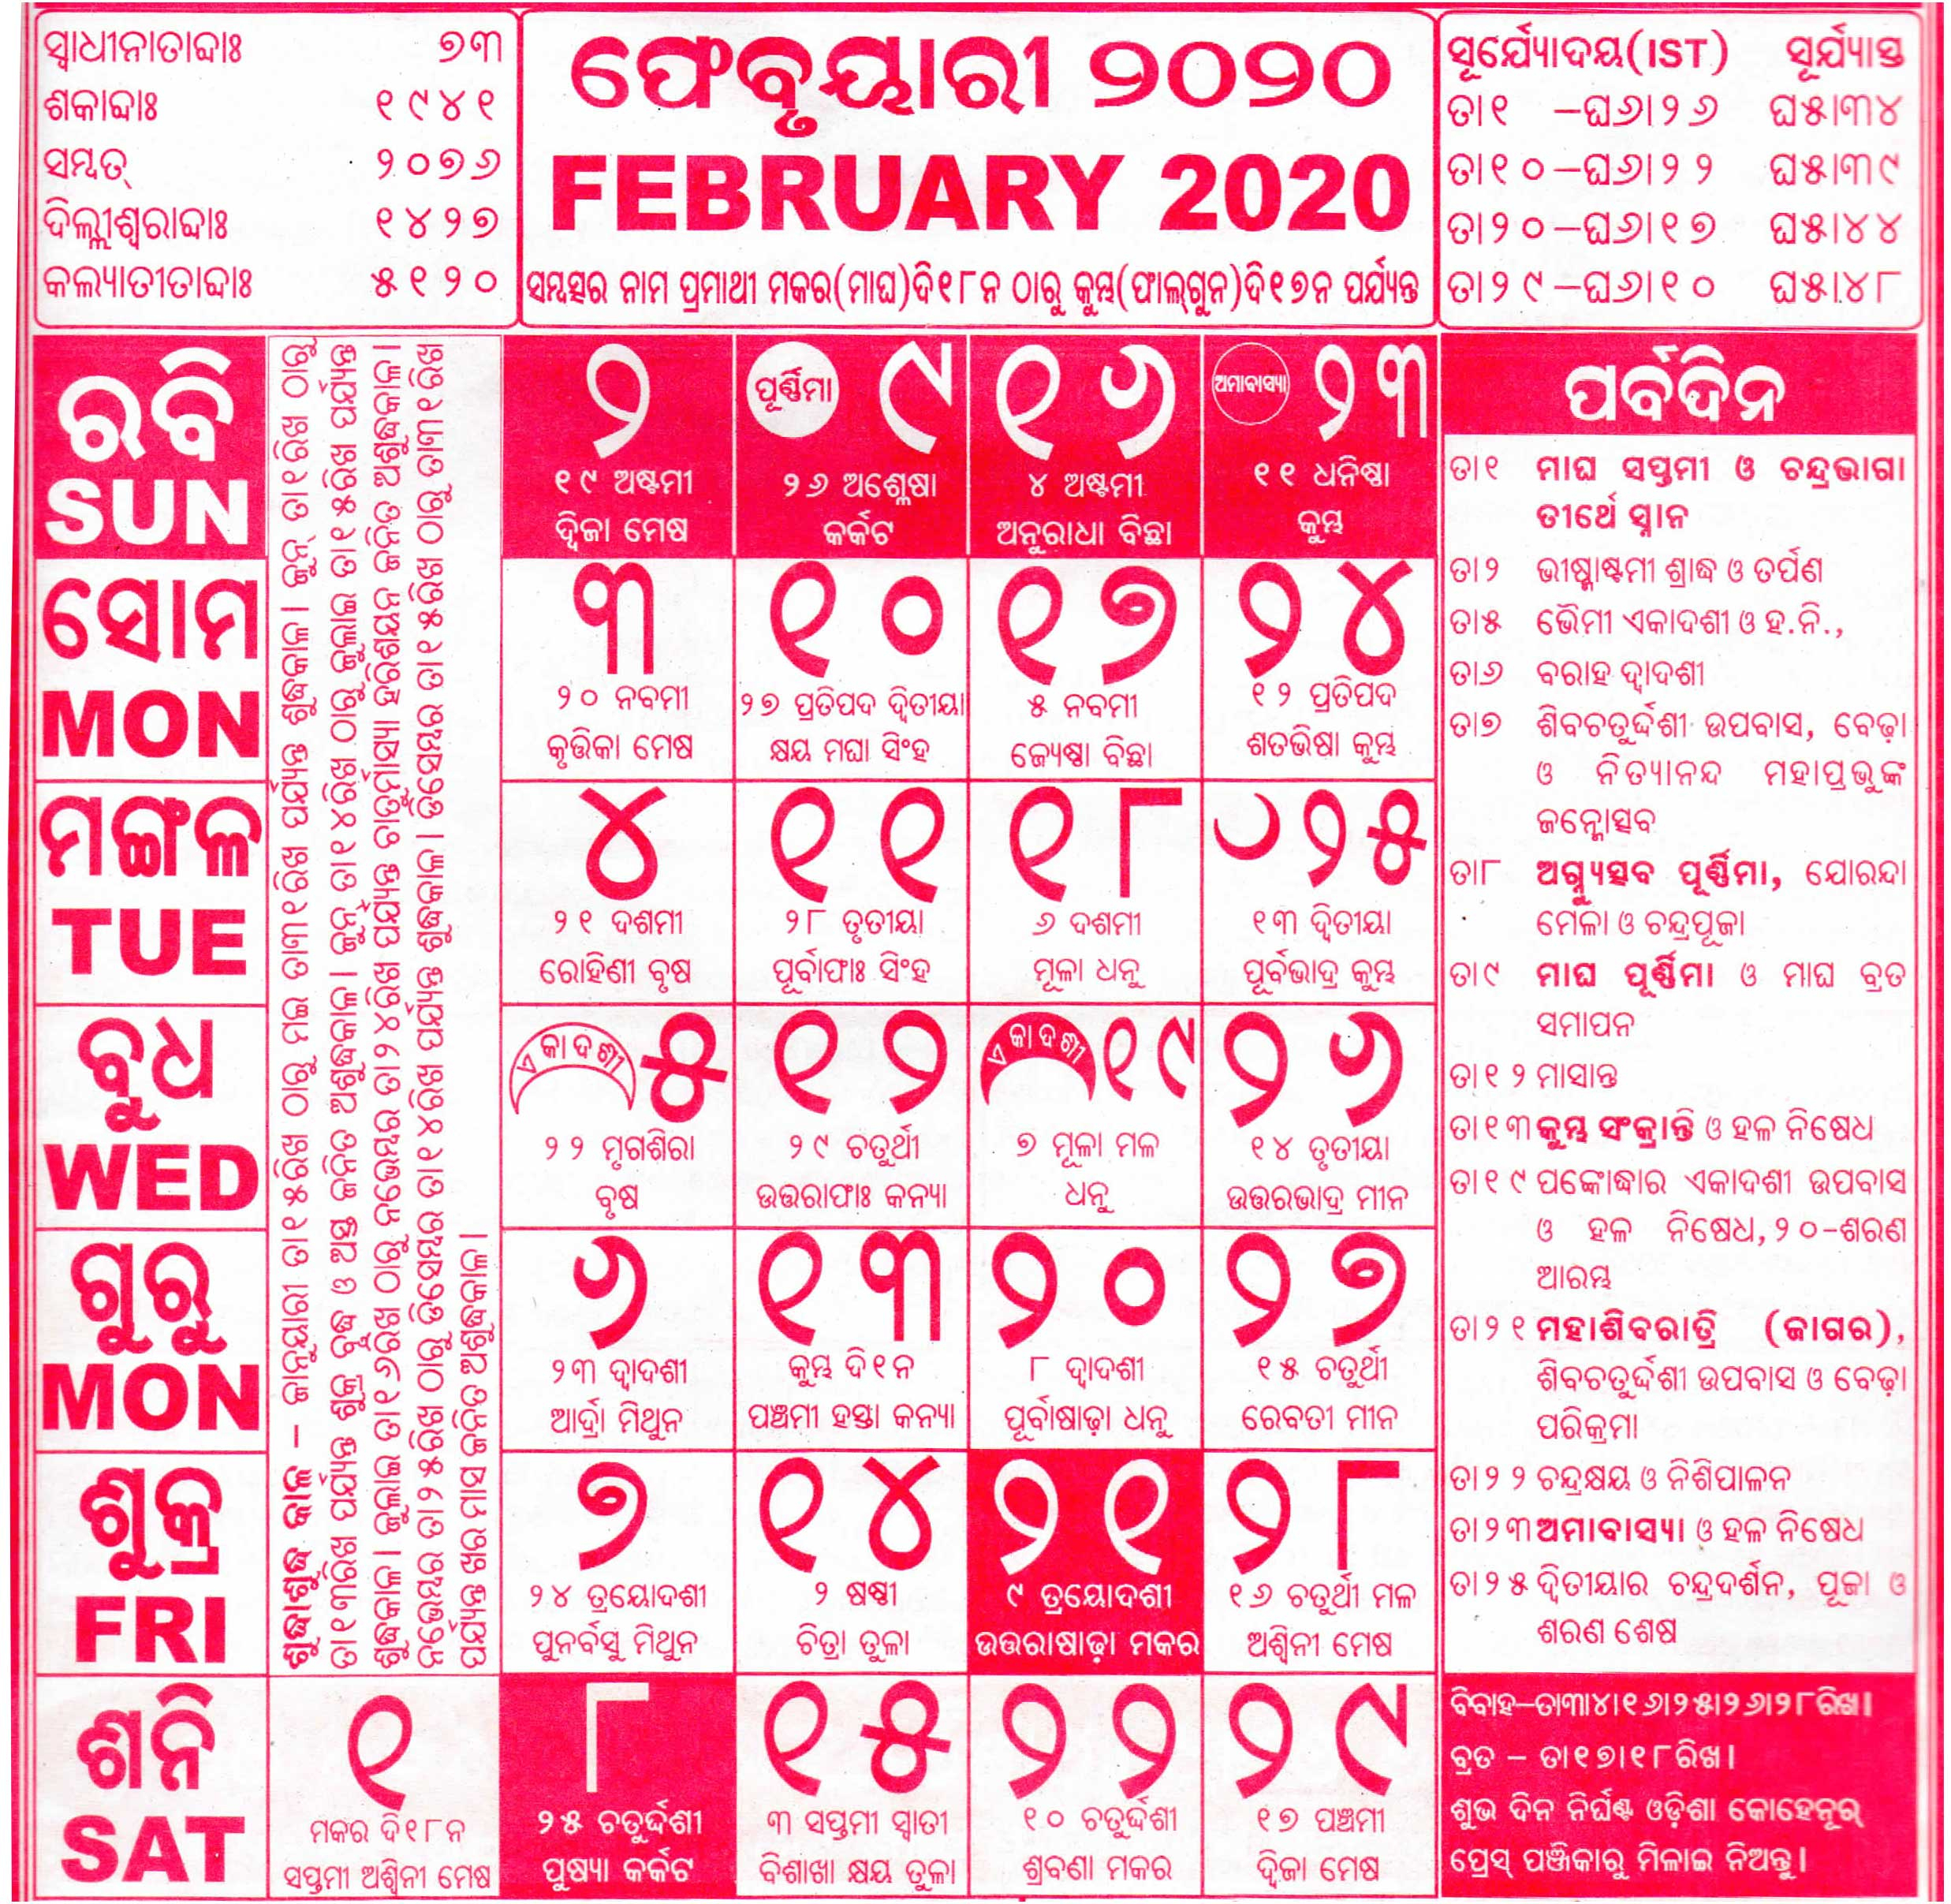 Odia Calendar February 2020 | | Calendarcraft within Odia Calendar February 2020